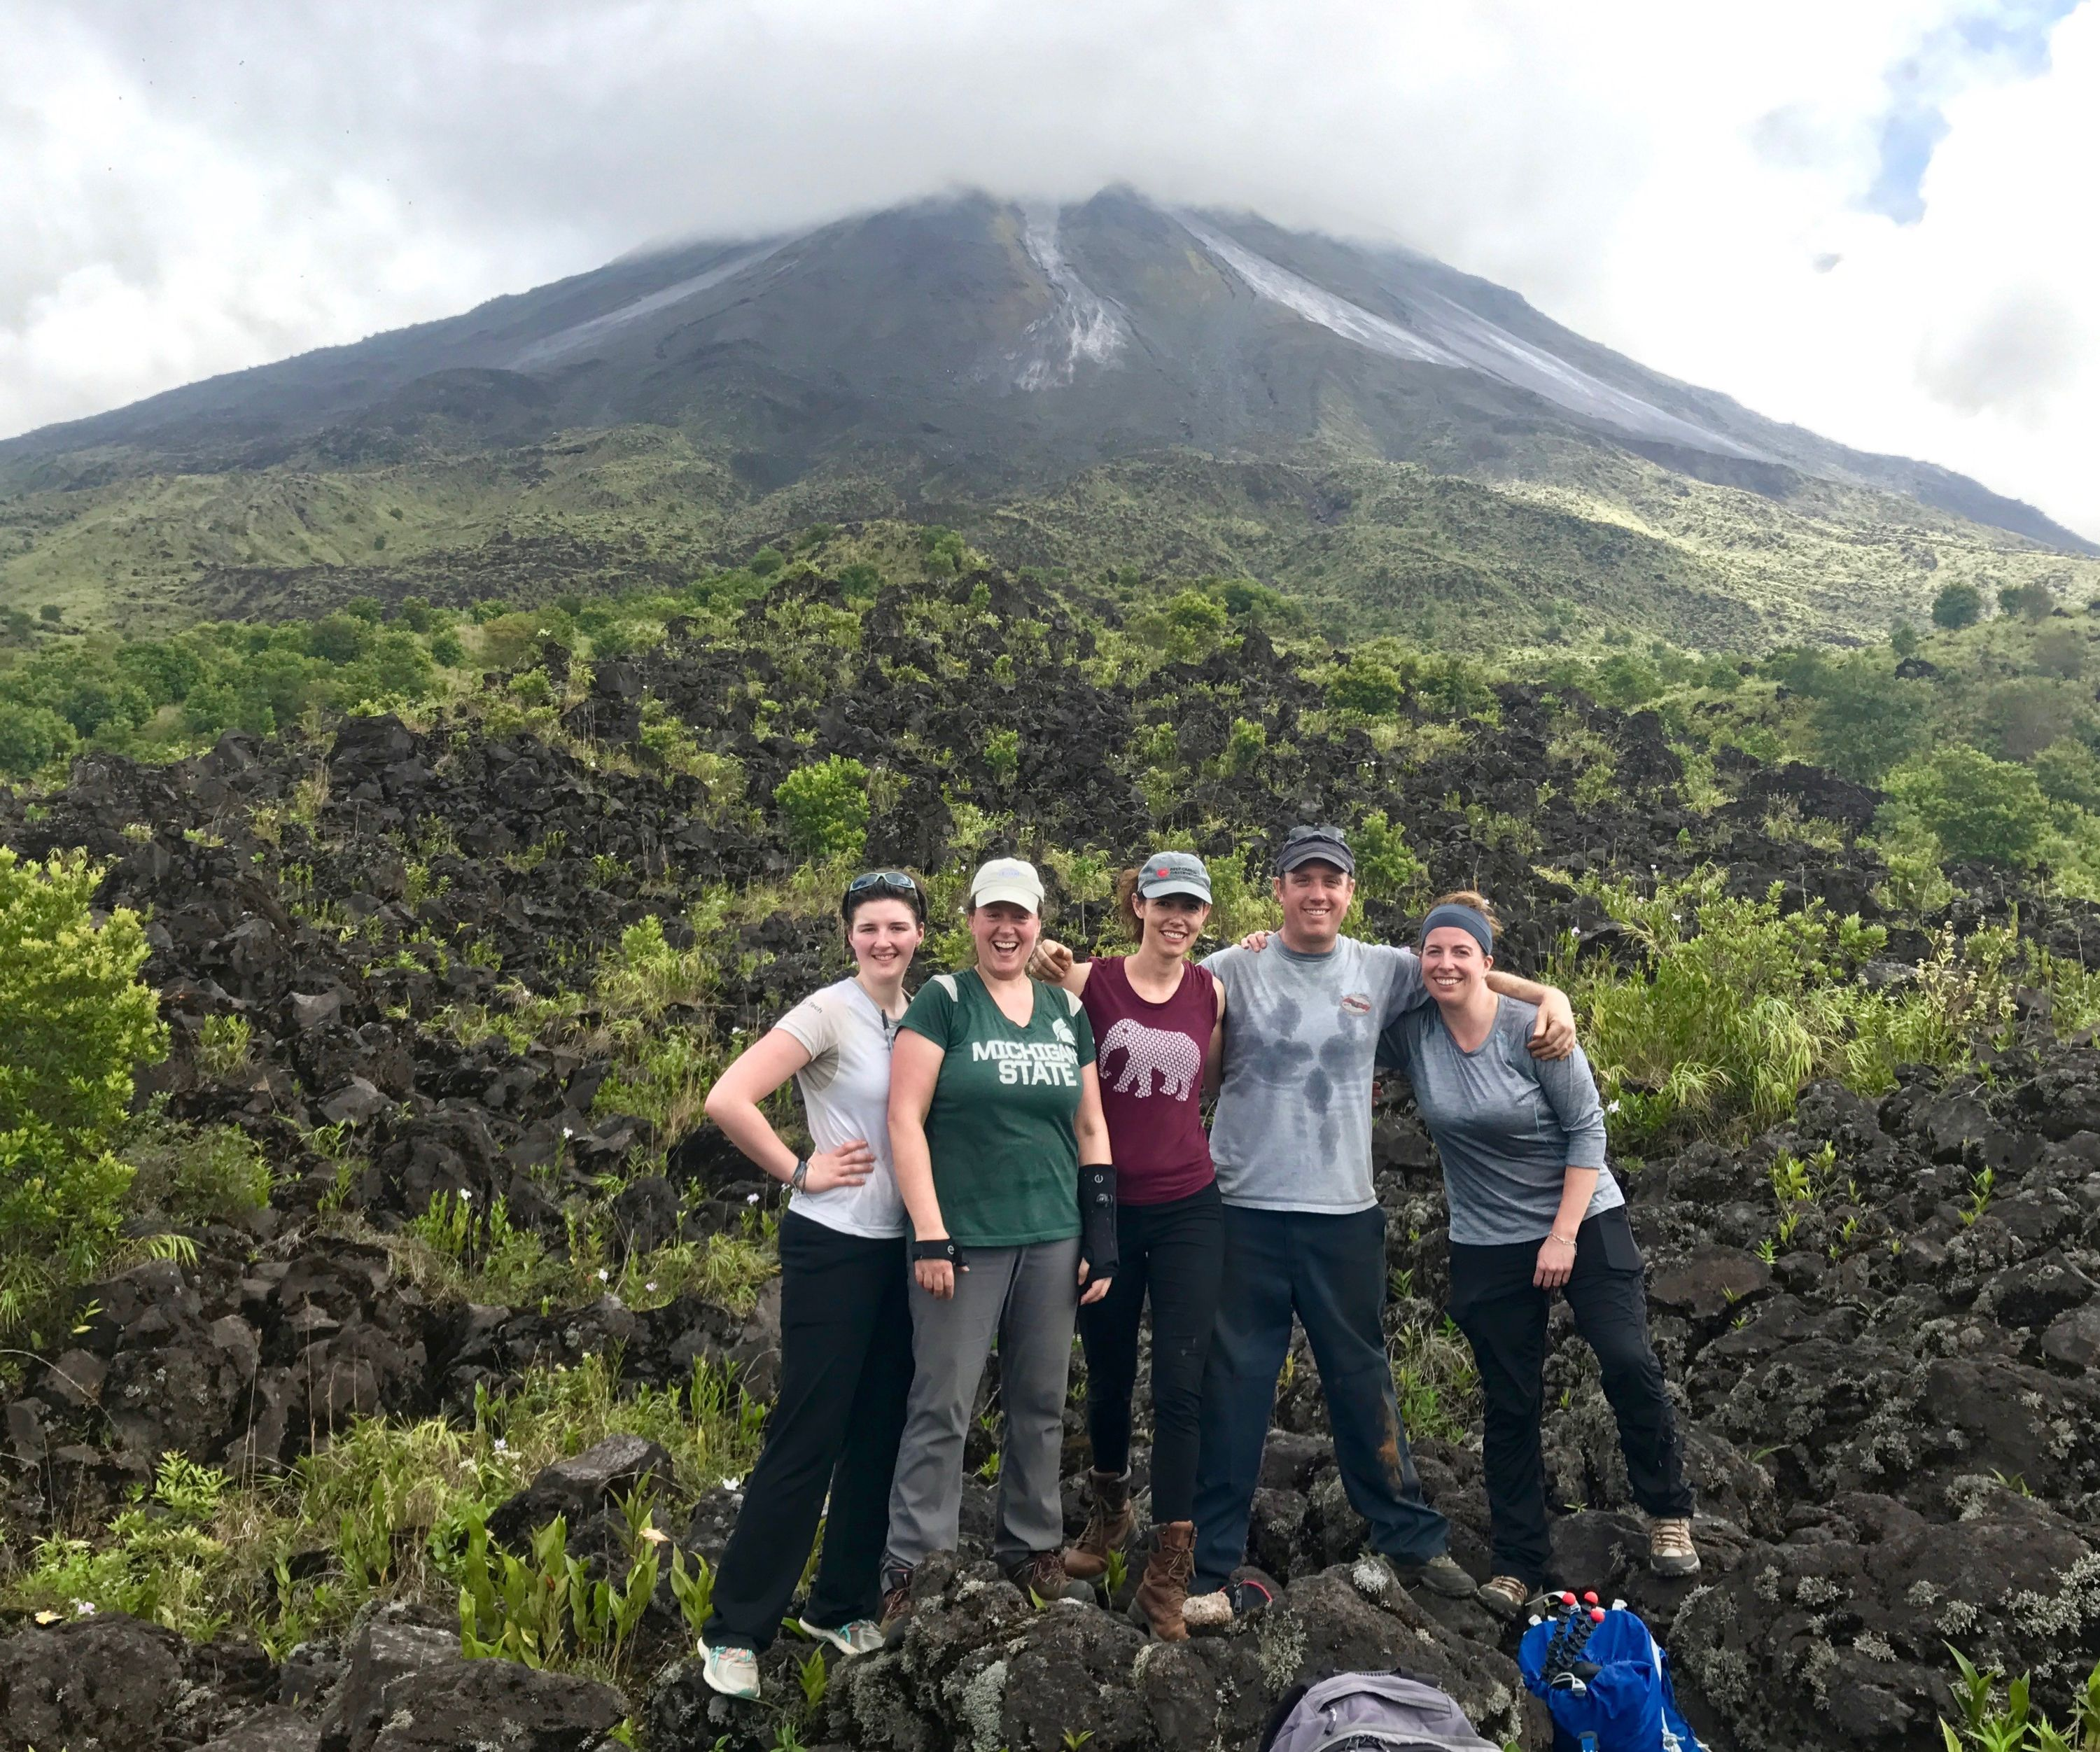 Miller(second fron left)and colleagues at Coasta Rican Volcano site